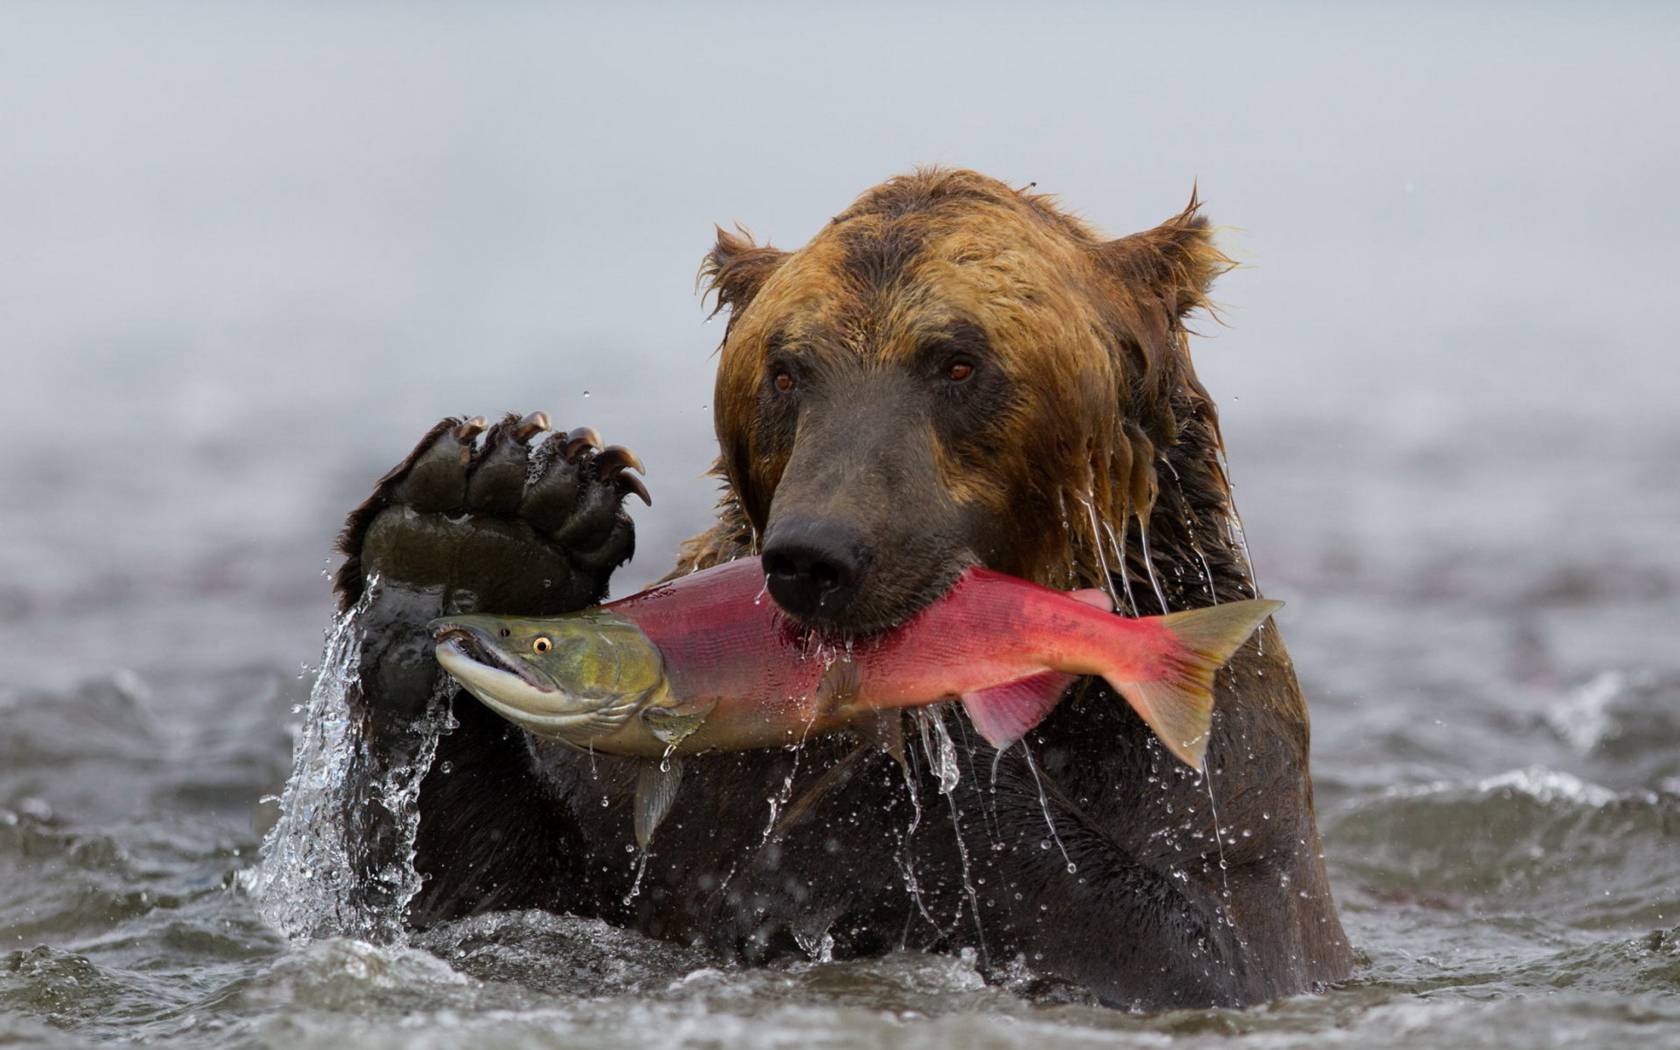 Pictures of bears fishing